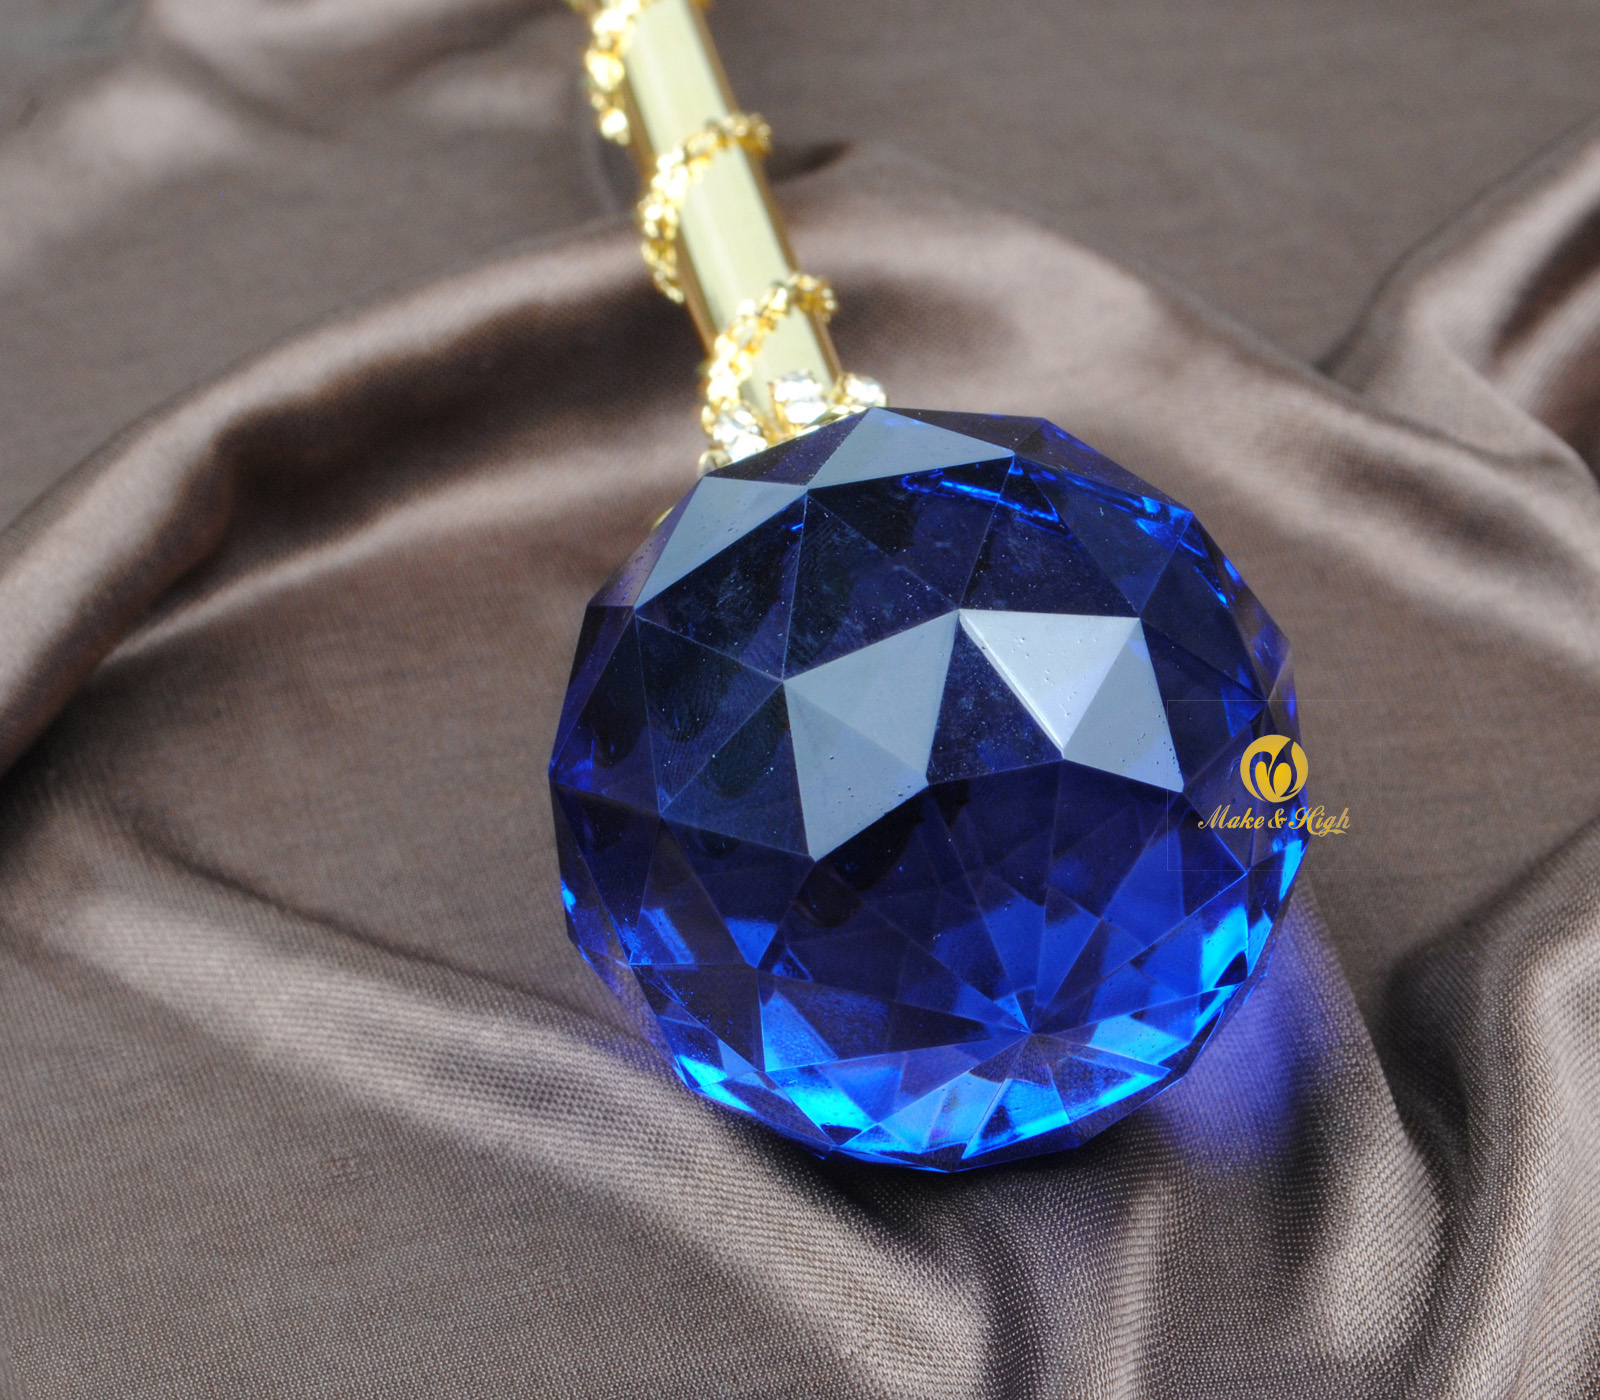 Blue Crystal Scepters Wand Handmade Round Ball Sceptres Gold Tone Wedding Bridal Pageant Party Costumes Props Accessories